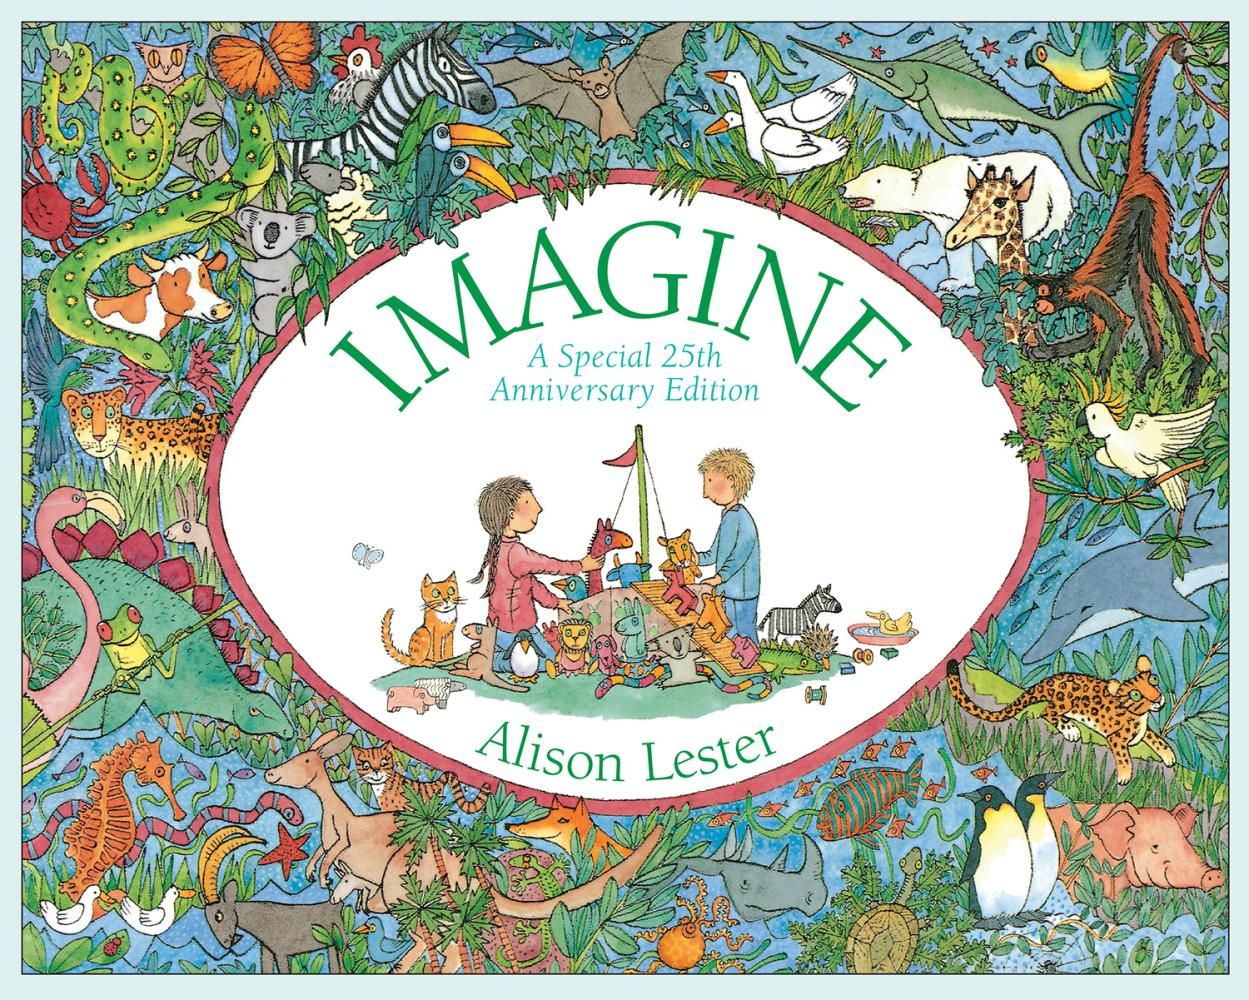 10.Imagine, by Alison Lester